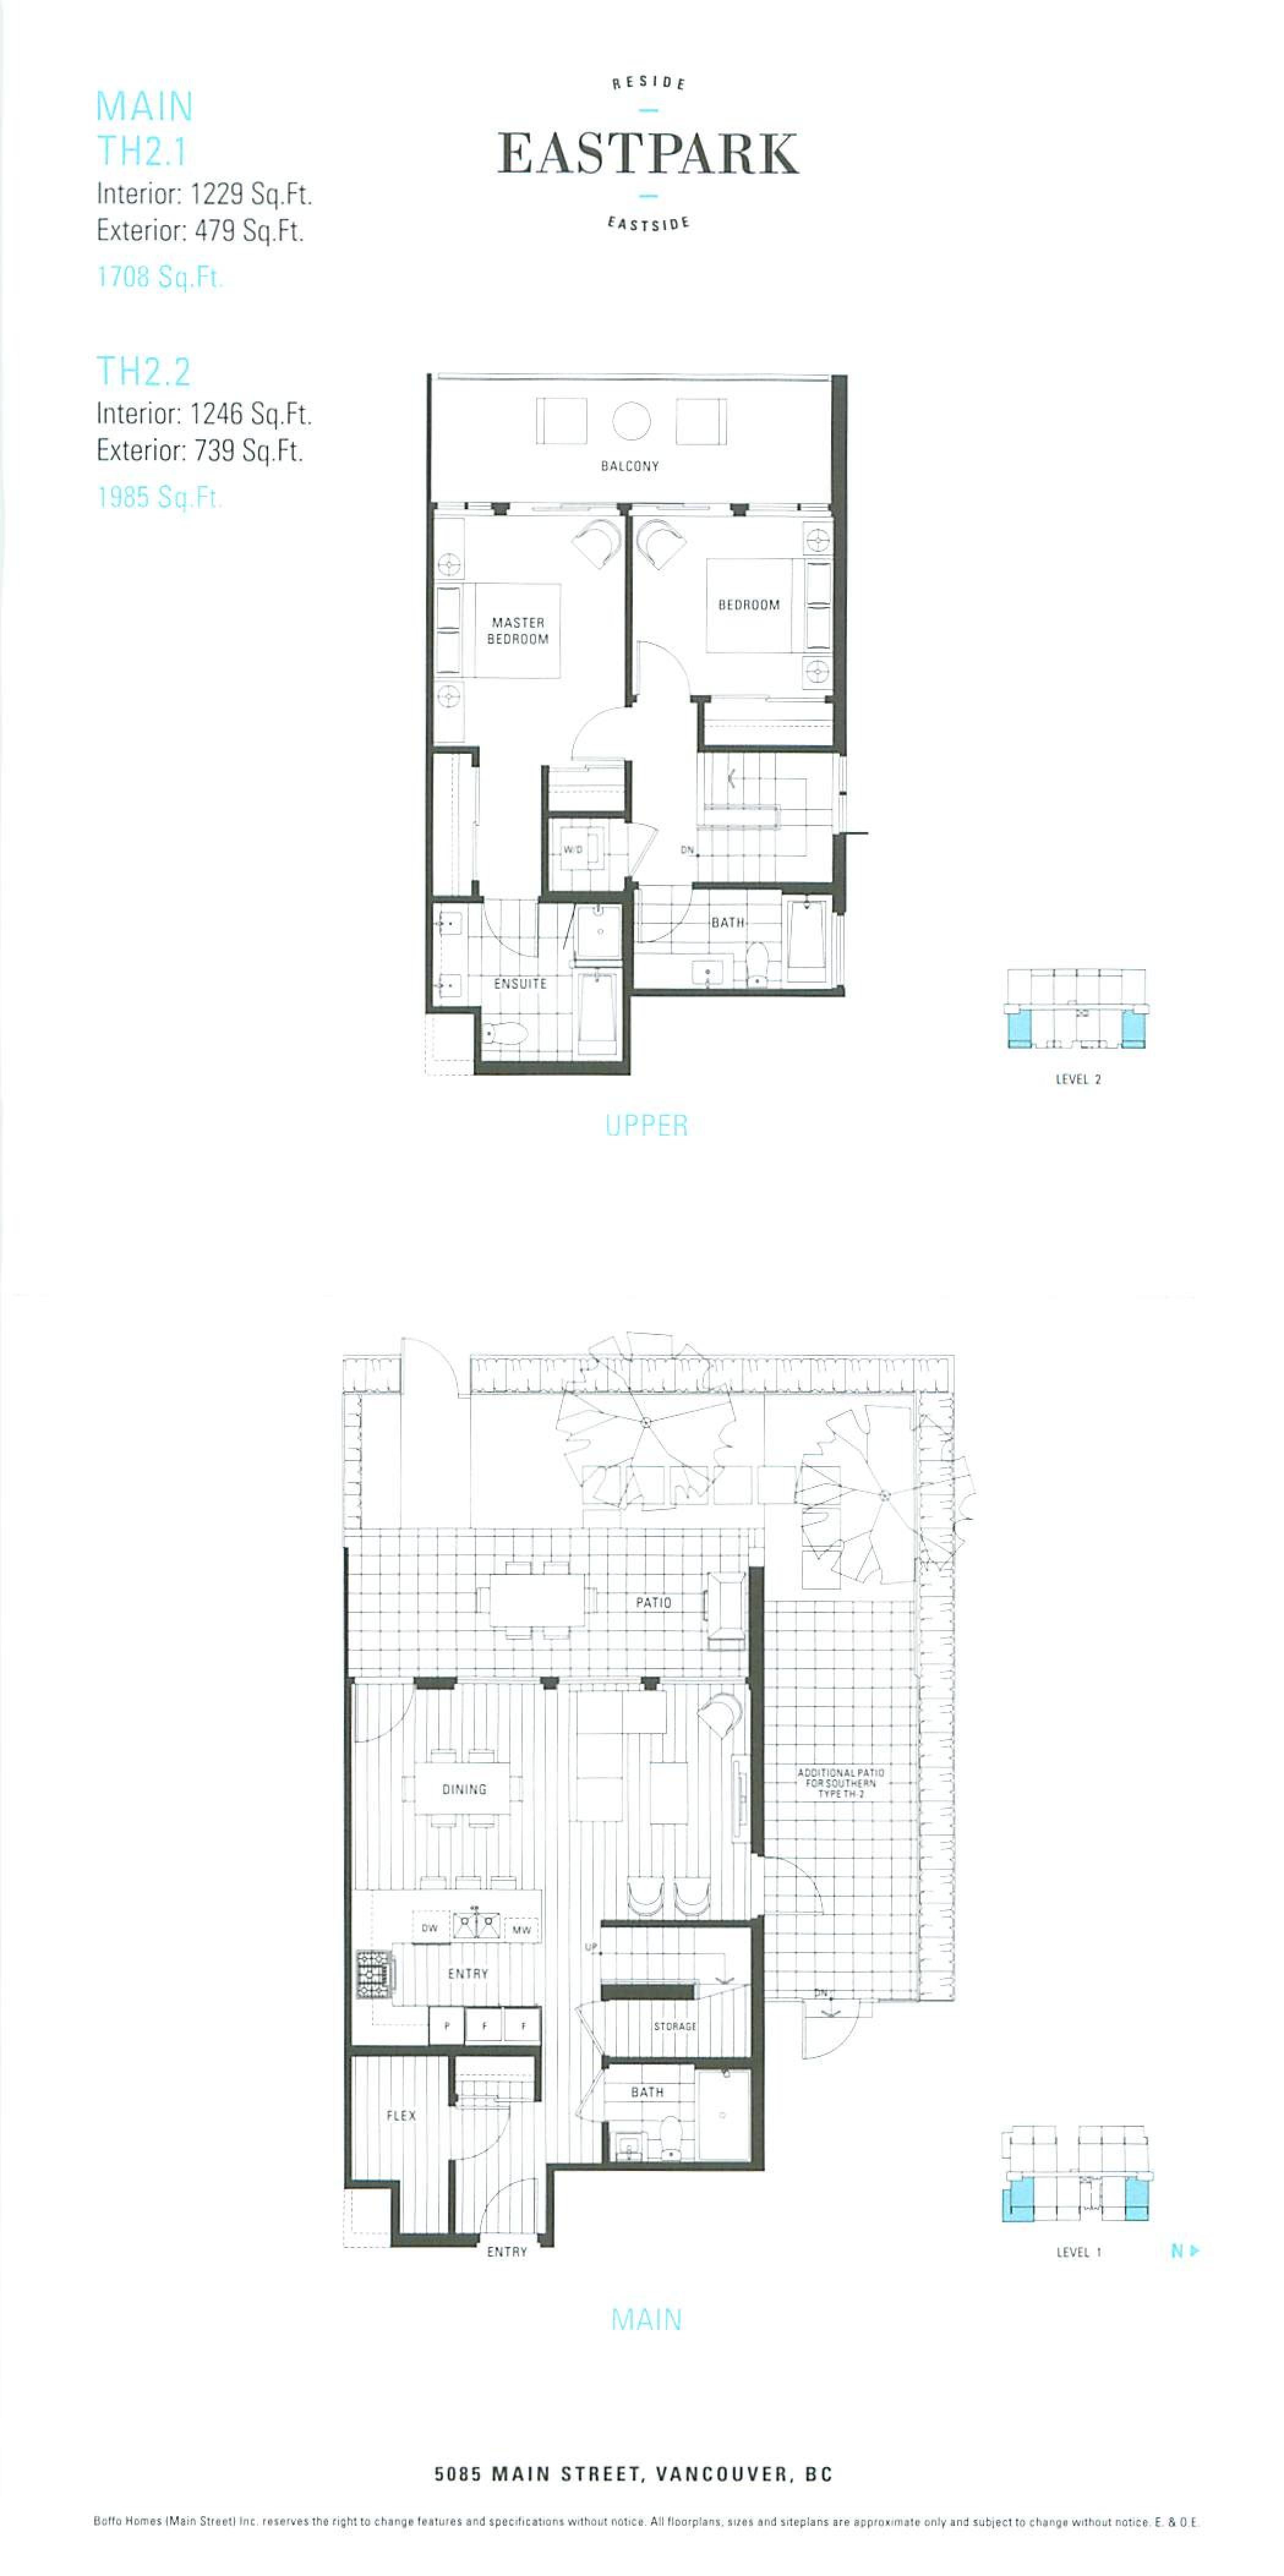 EastPark Main Larger Floor Plans Mike Stewart-page-007